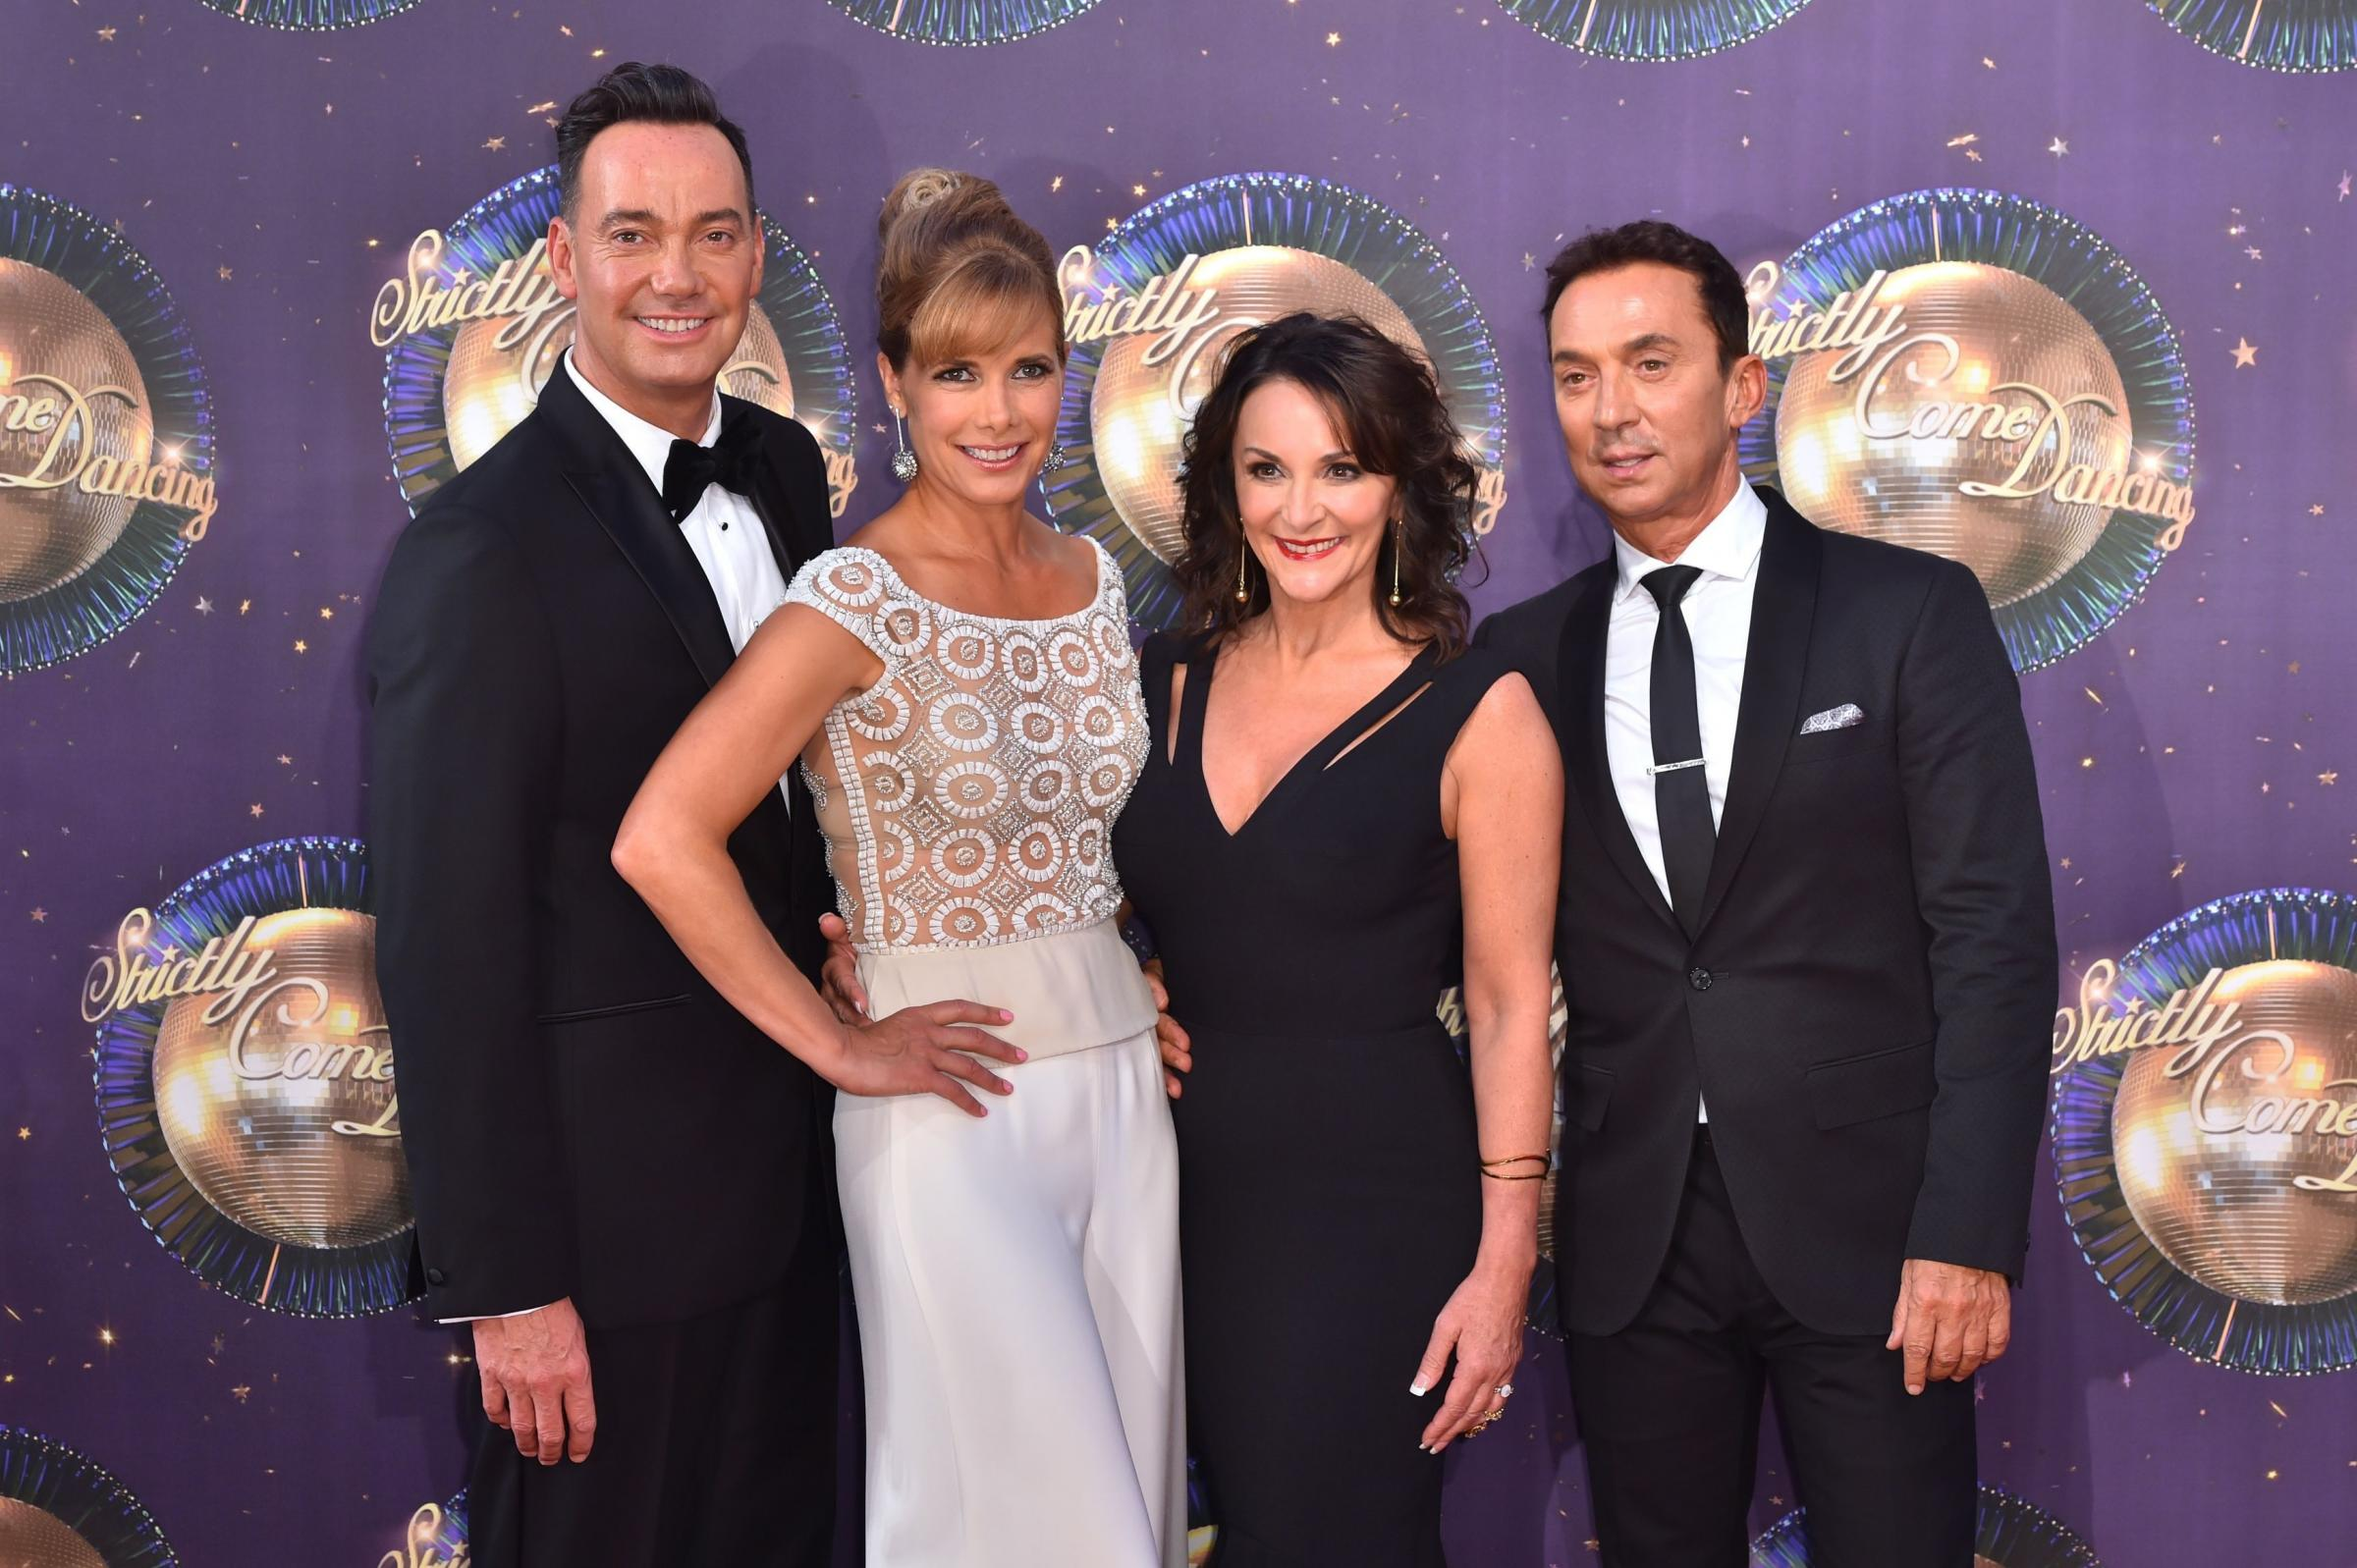 28/8/17 PA File Photo of Strictly Come Dancing judges Craig Revel Horwood, Darcey Bussell, Shirely Ballas and Bruno Tonioli. See PA Feature TV Strictly. Picture credit should read: Matt Crossick/PA Photos. WARNING: This picture must only be used to accomp